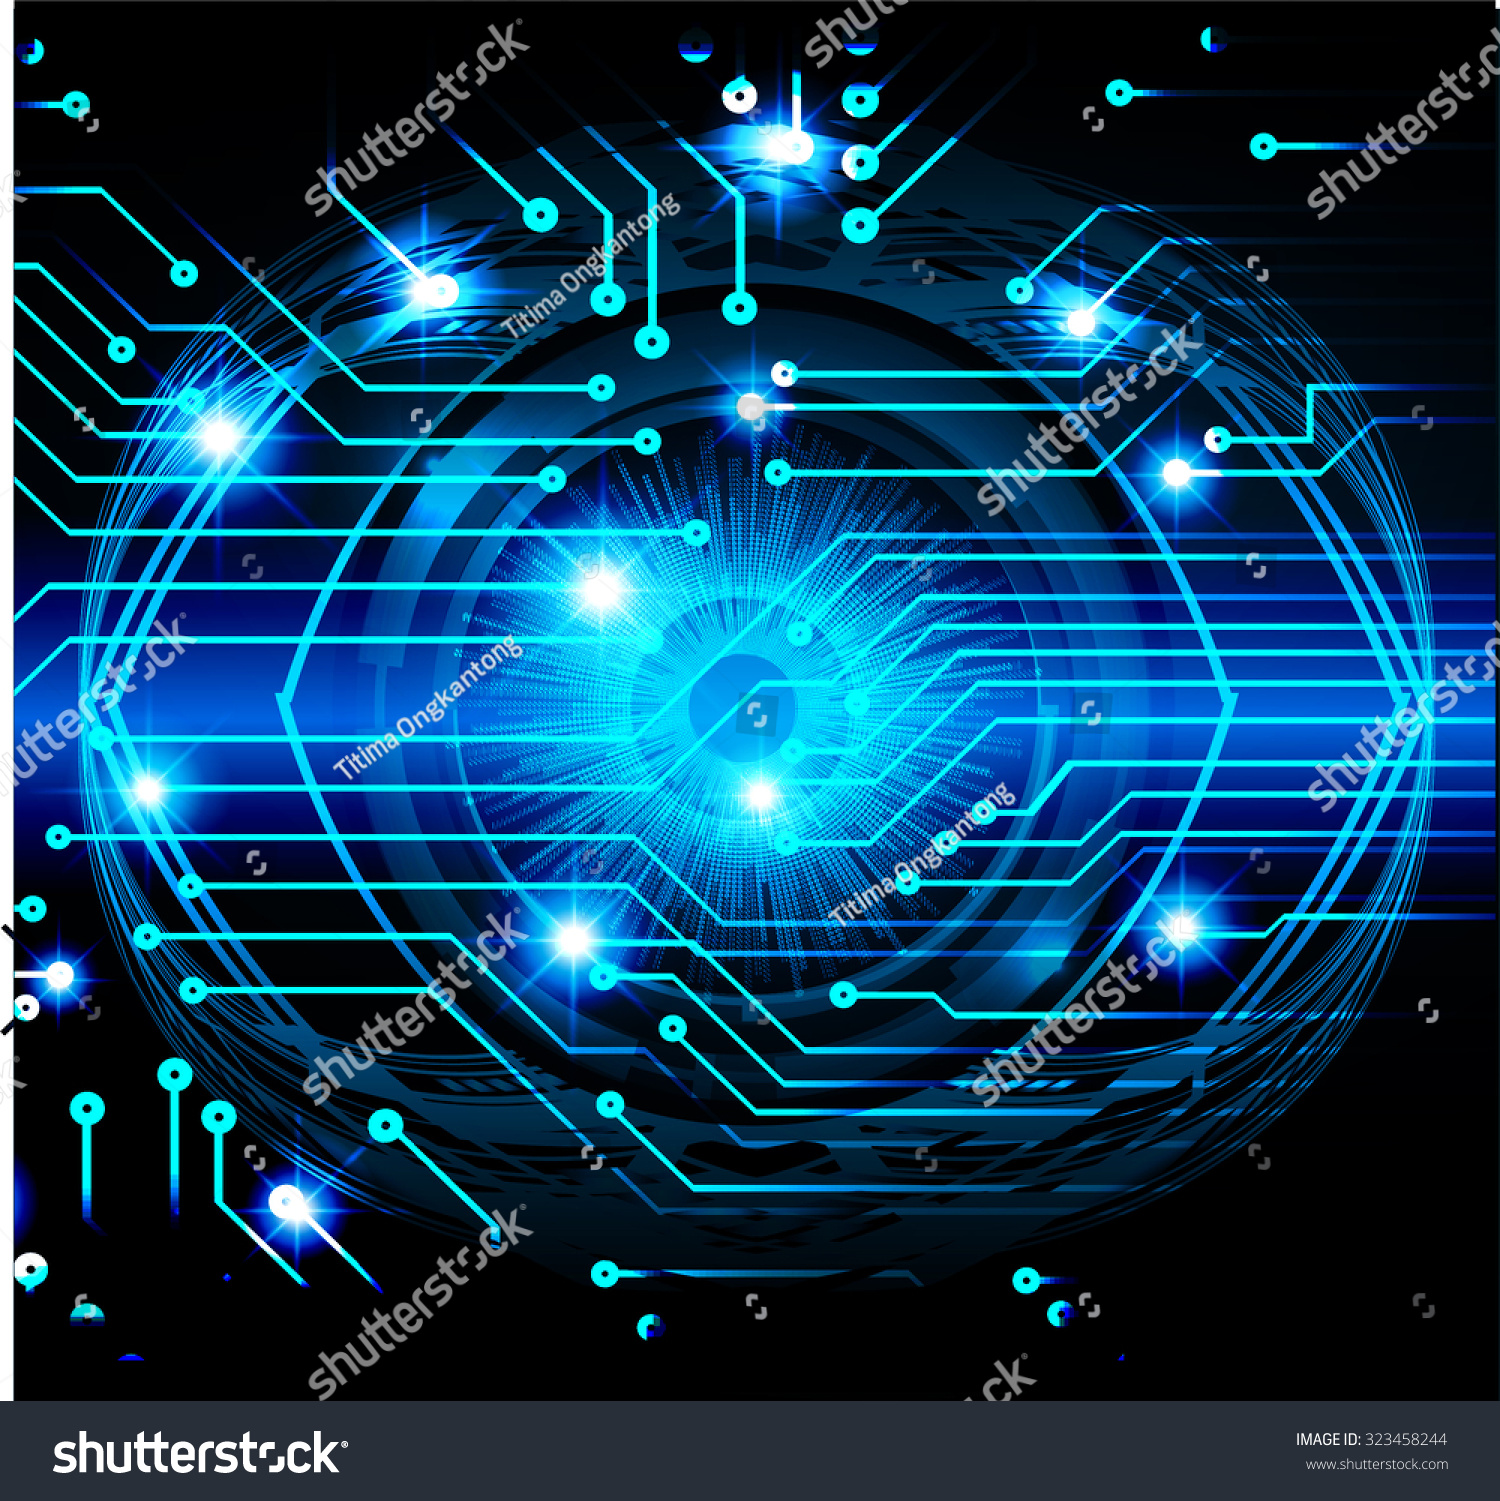 website colors neon : Dark Blue Color Light Abstract Technology Background For Computer Graphic Website Internet And Business Circuit